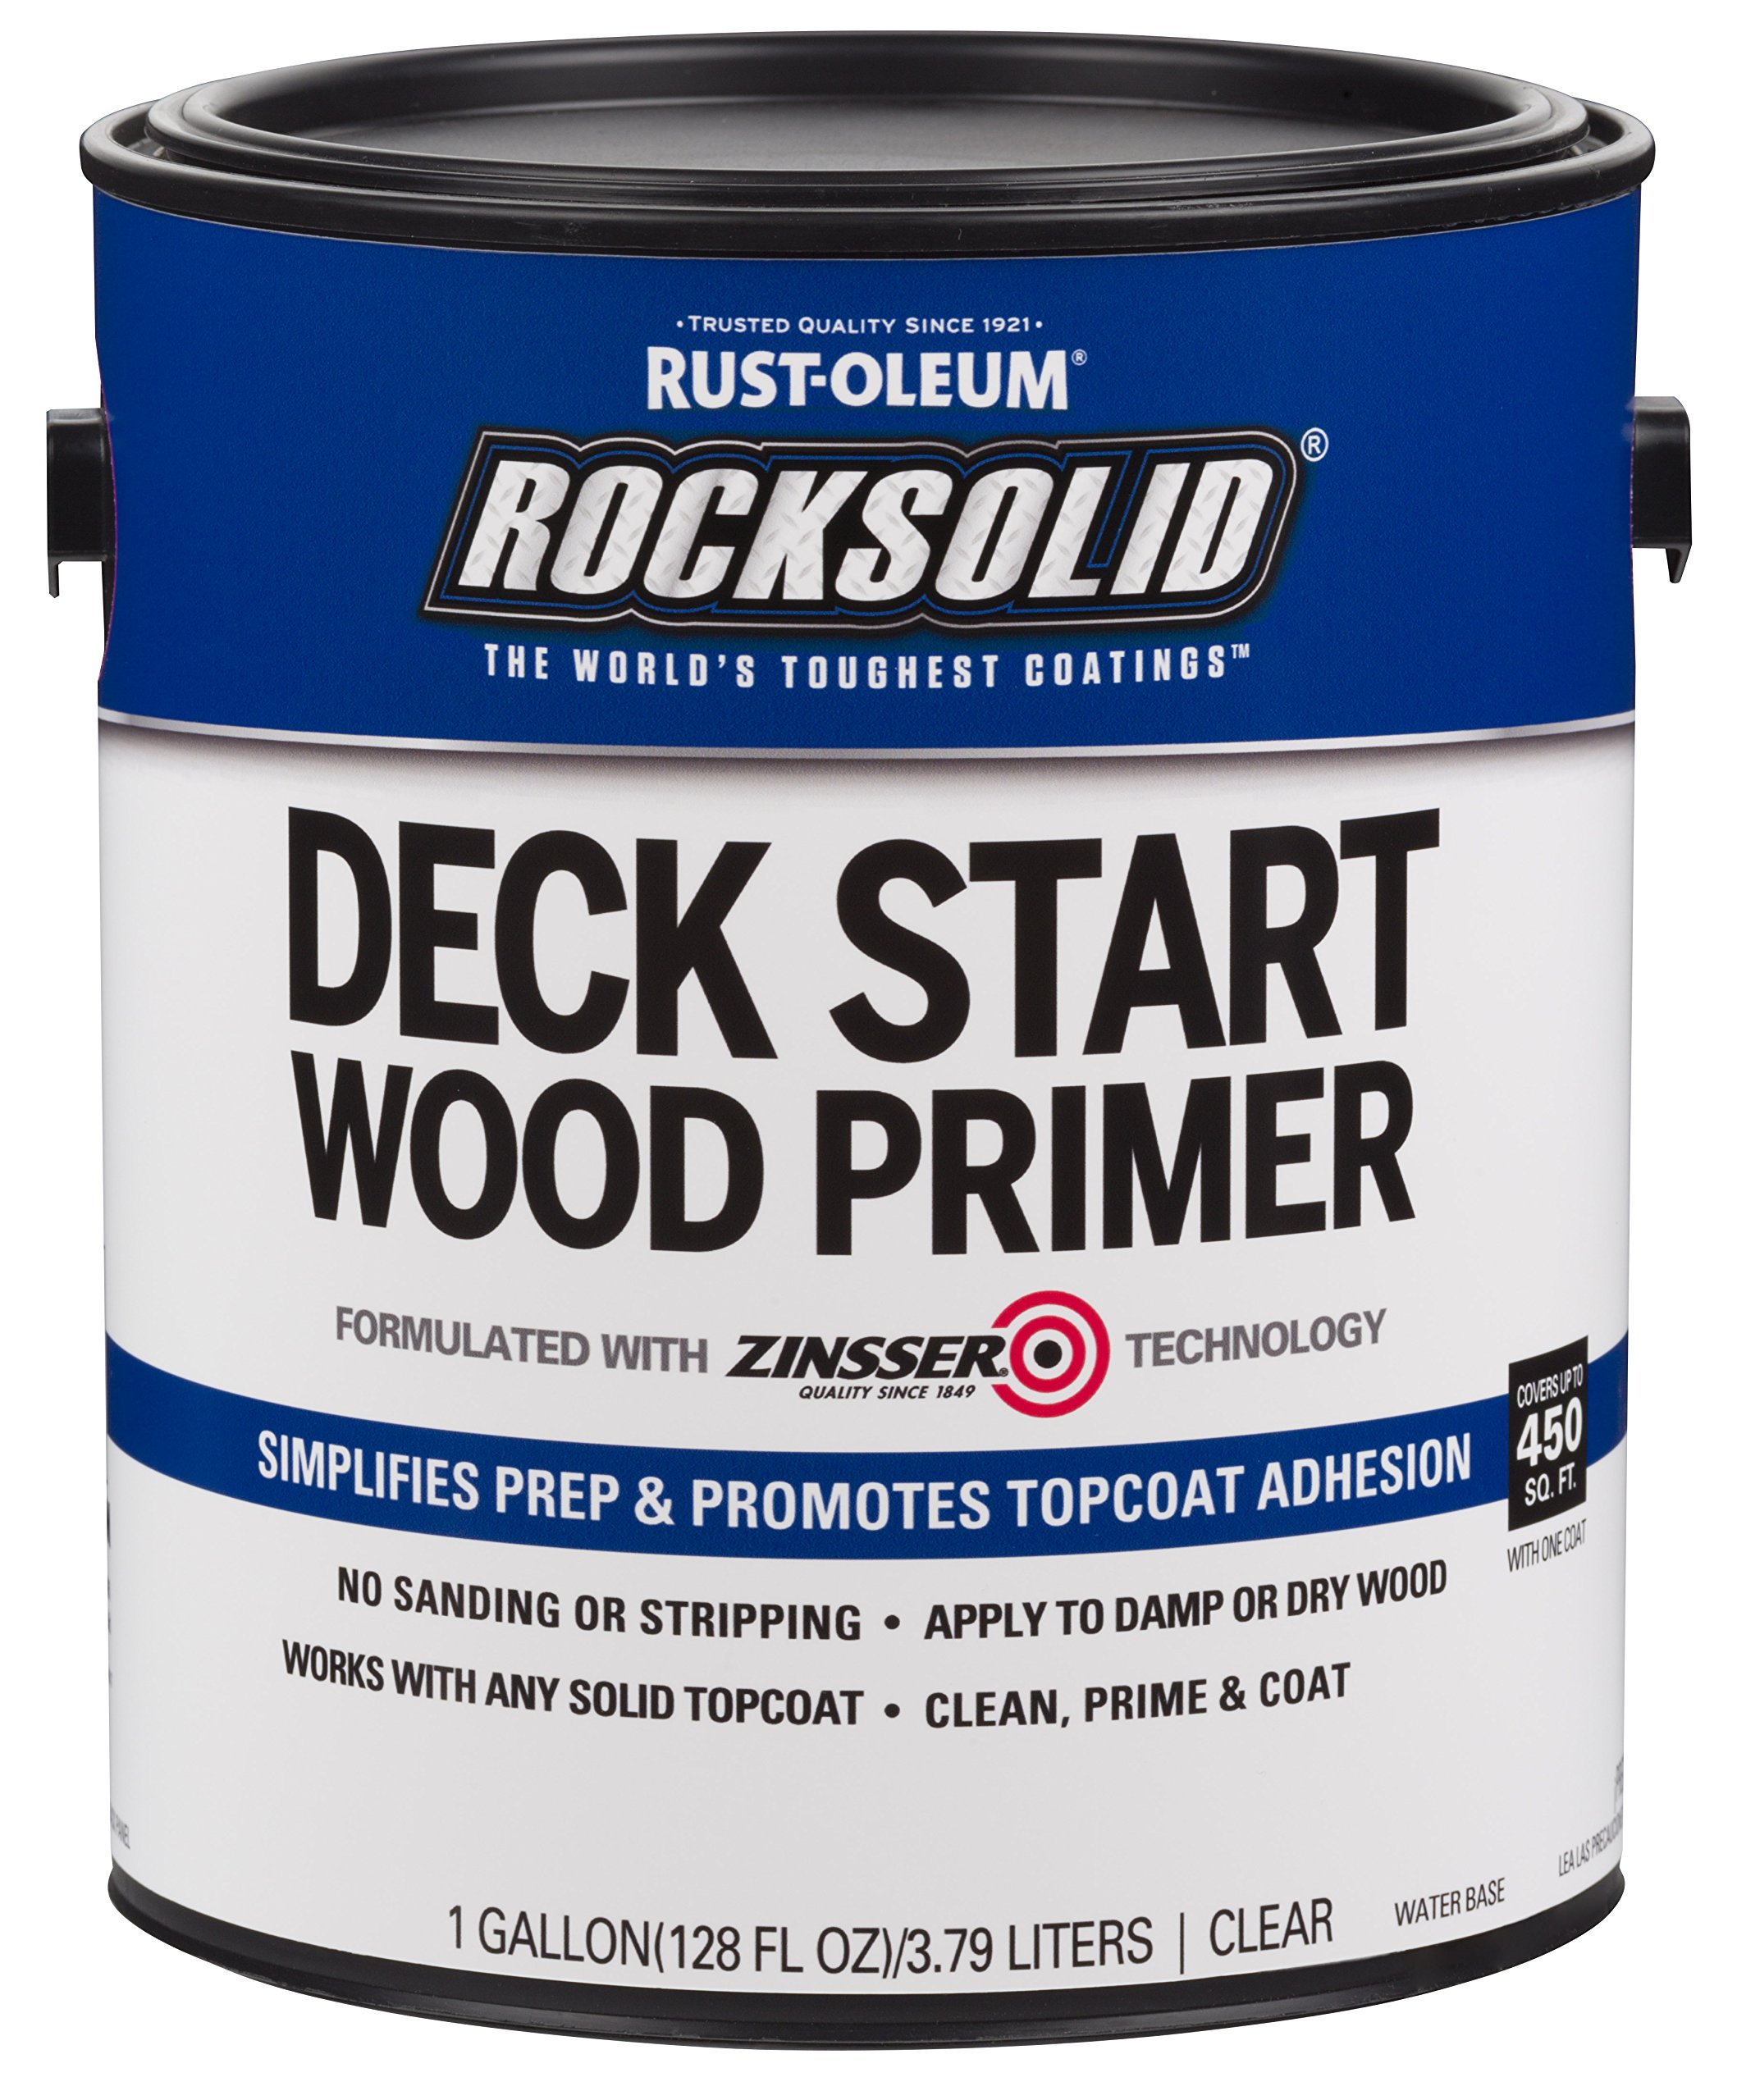 Rust-Oleum 312283 RockSolid Deck Start Wood Primer, 1 Gallon, Clear